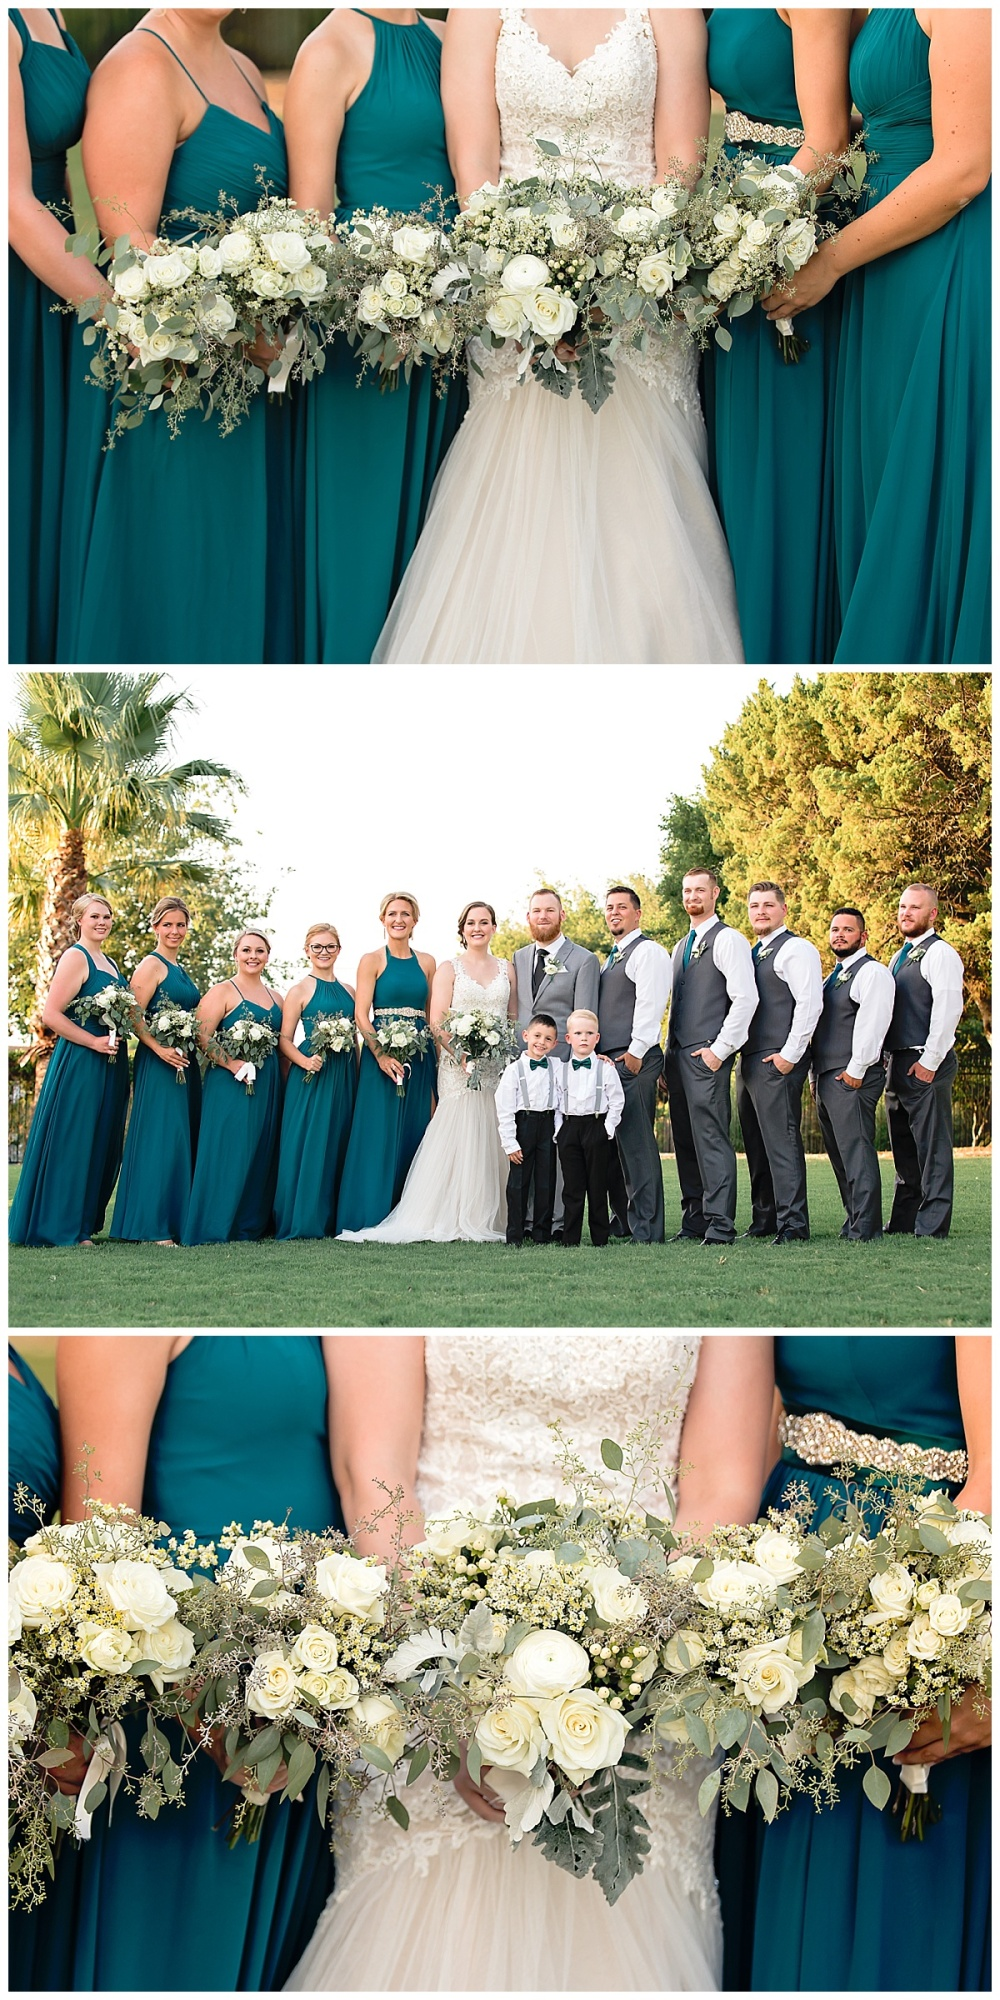 Carly-Barton-Photography-Wedding-Photos-Granberry-Hills-Event-Facility-Ryan-Chelsea-San-Antonio-Texas_0053